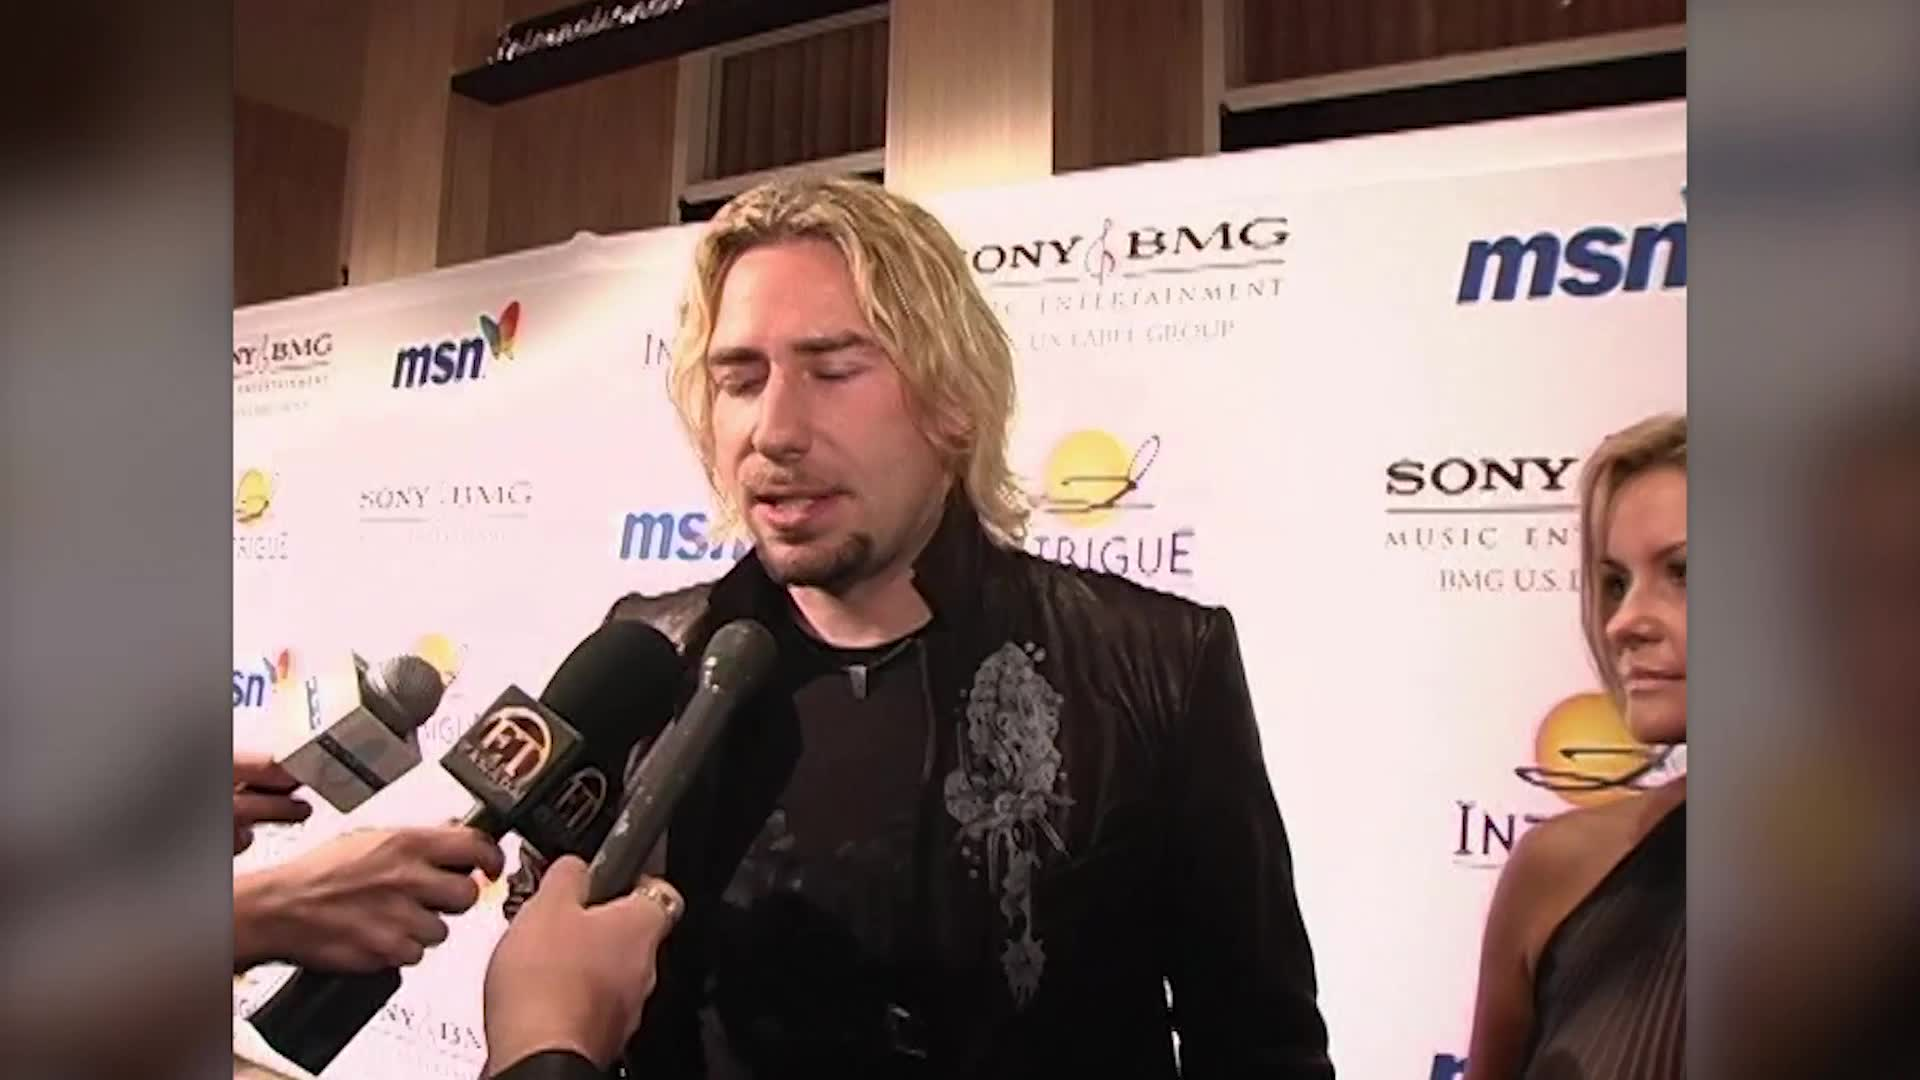 First Pictures of Chad Kroeger After Splitting With Avril Lavigne